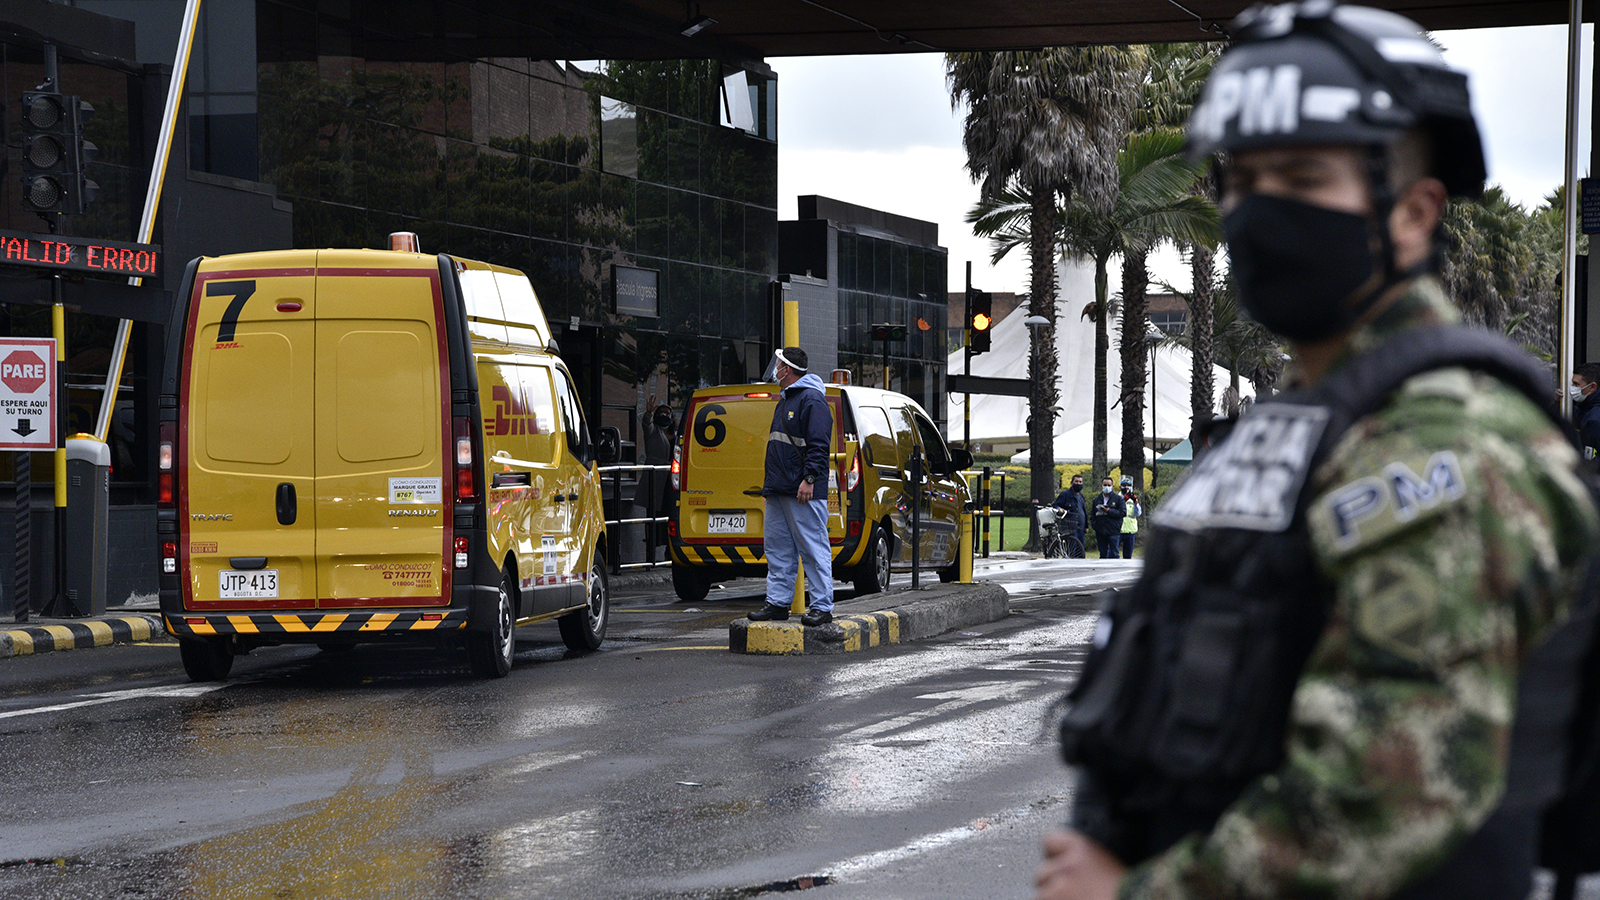 A soldier stands guard as DHL company vans transport a batch of doses of the Pfizer-BioNTech Covid-19 vaccine to the Free Trade Zone to be stored in freezers on February 15, in Bogota, Colombia.